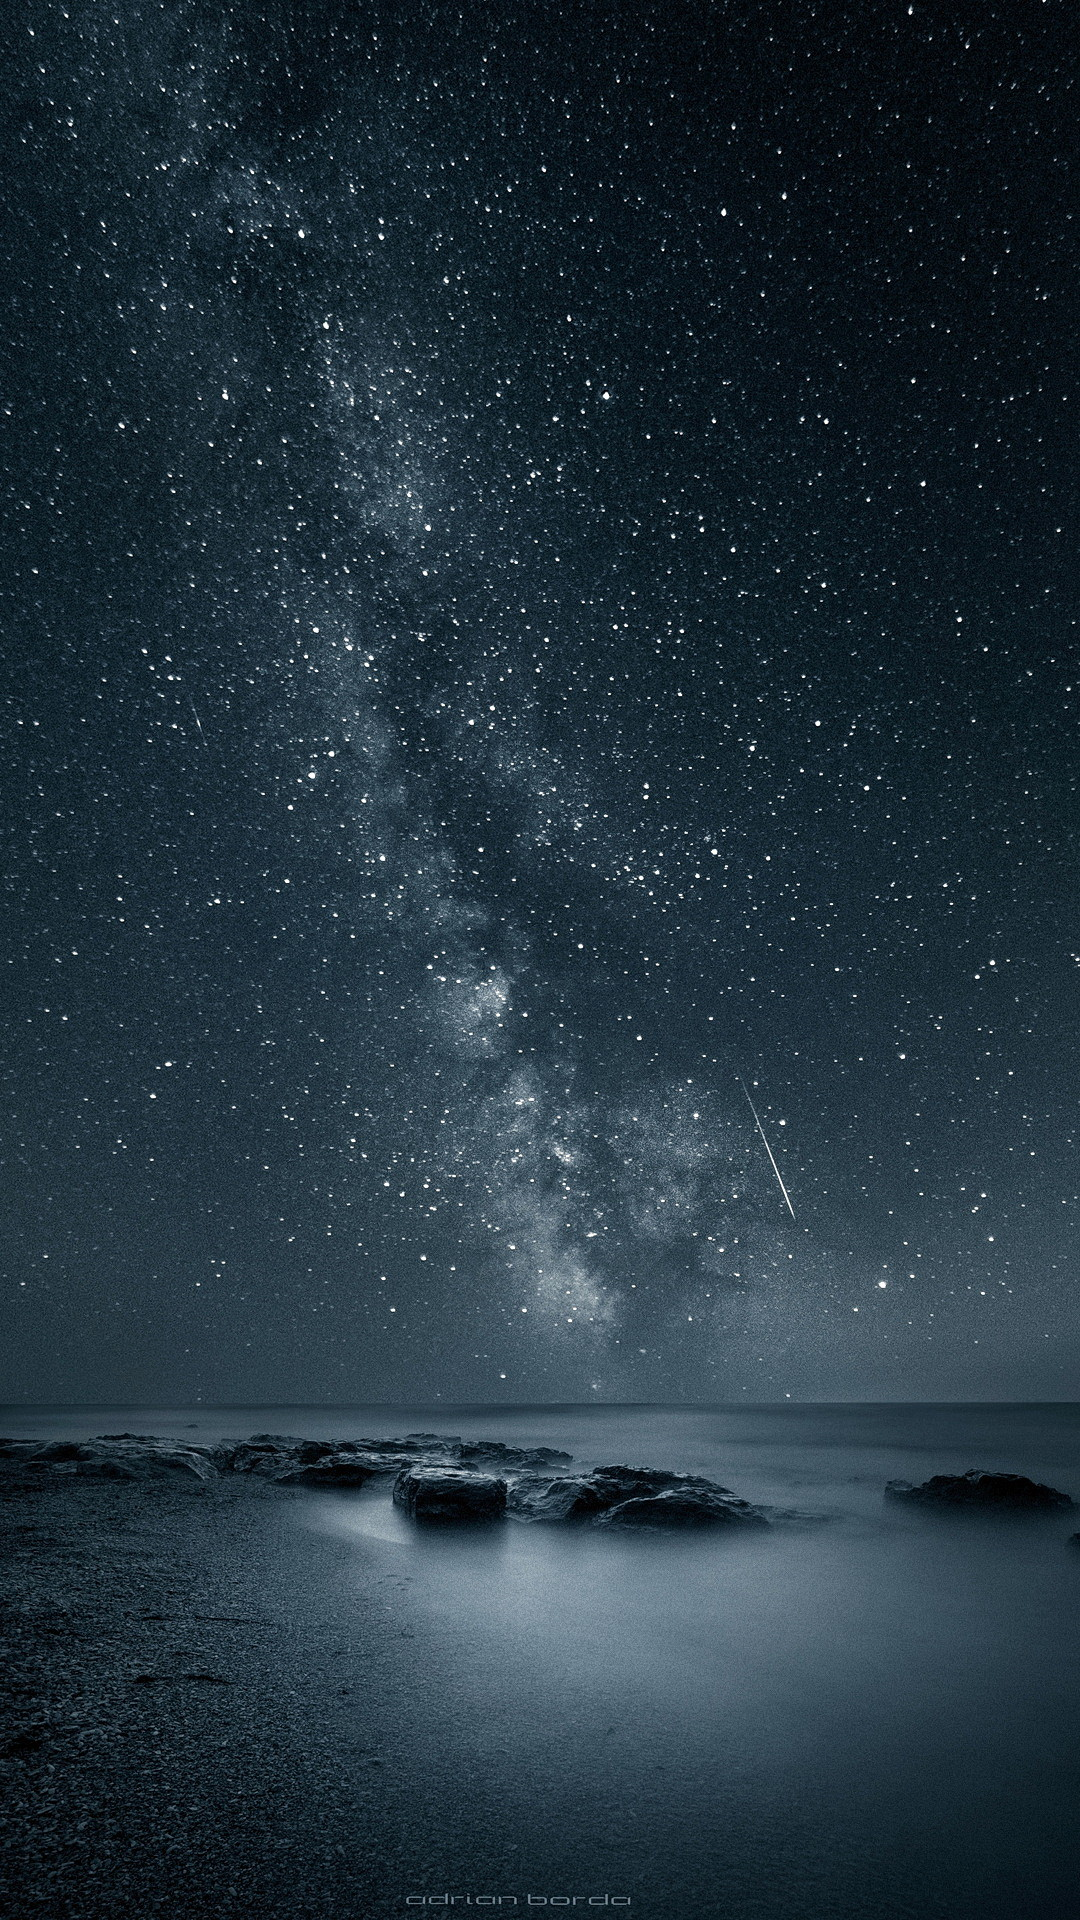 The stars in the galaxy. Tap to see more beautiful Nature Apple iPhone Plus  HD wallpapers, backgrounds, fondos.